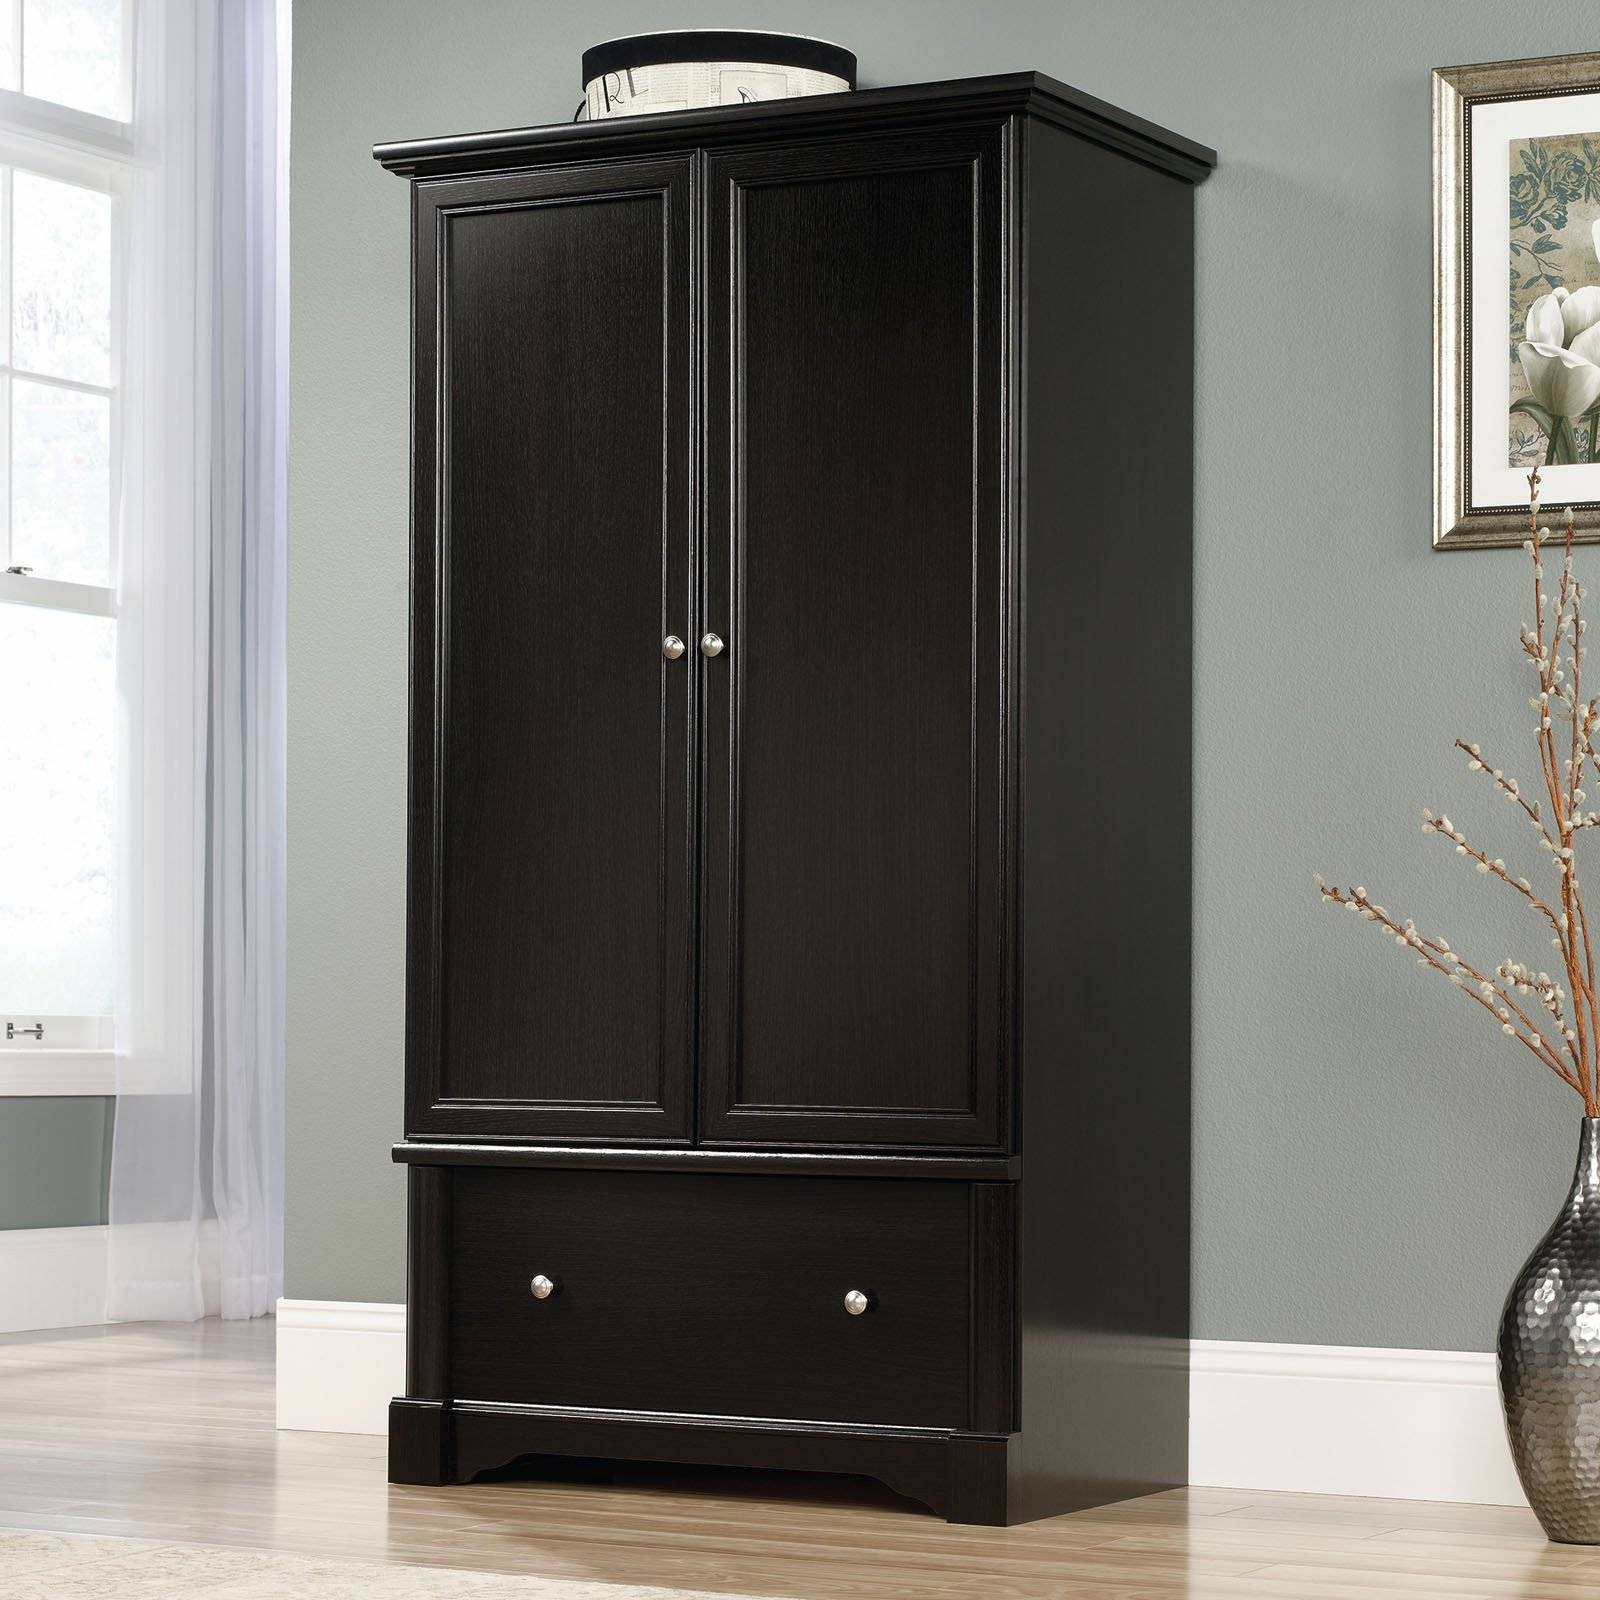 Bedroom : Black Armoire Wardrobe Sale Armoire Wardrobe Single regarding Single Black Wardrobes (Image 1 of 15)